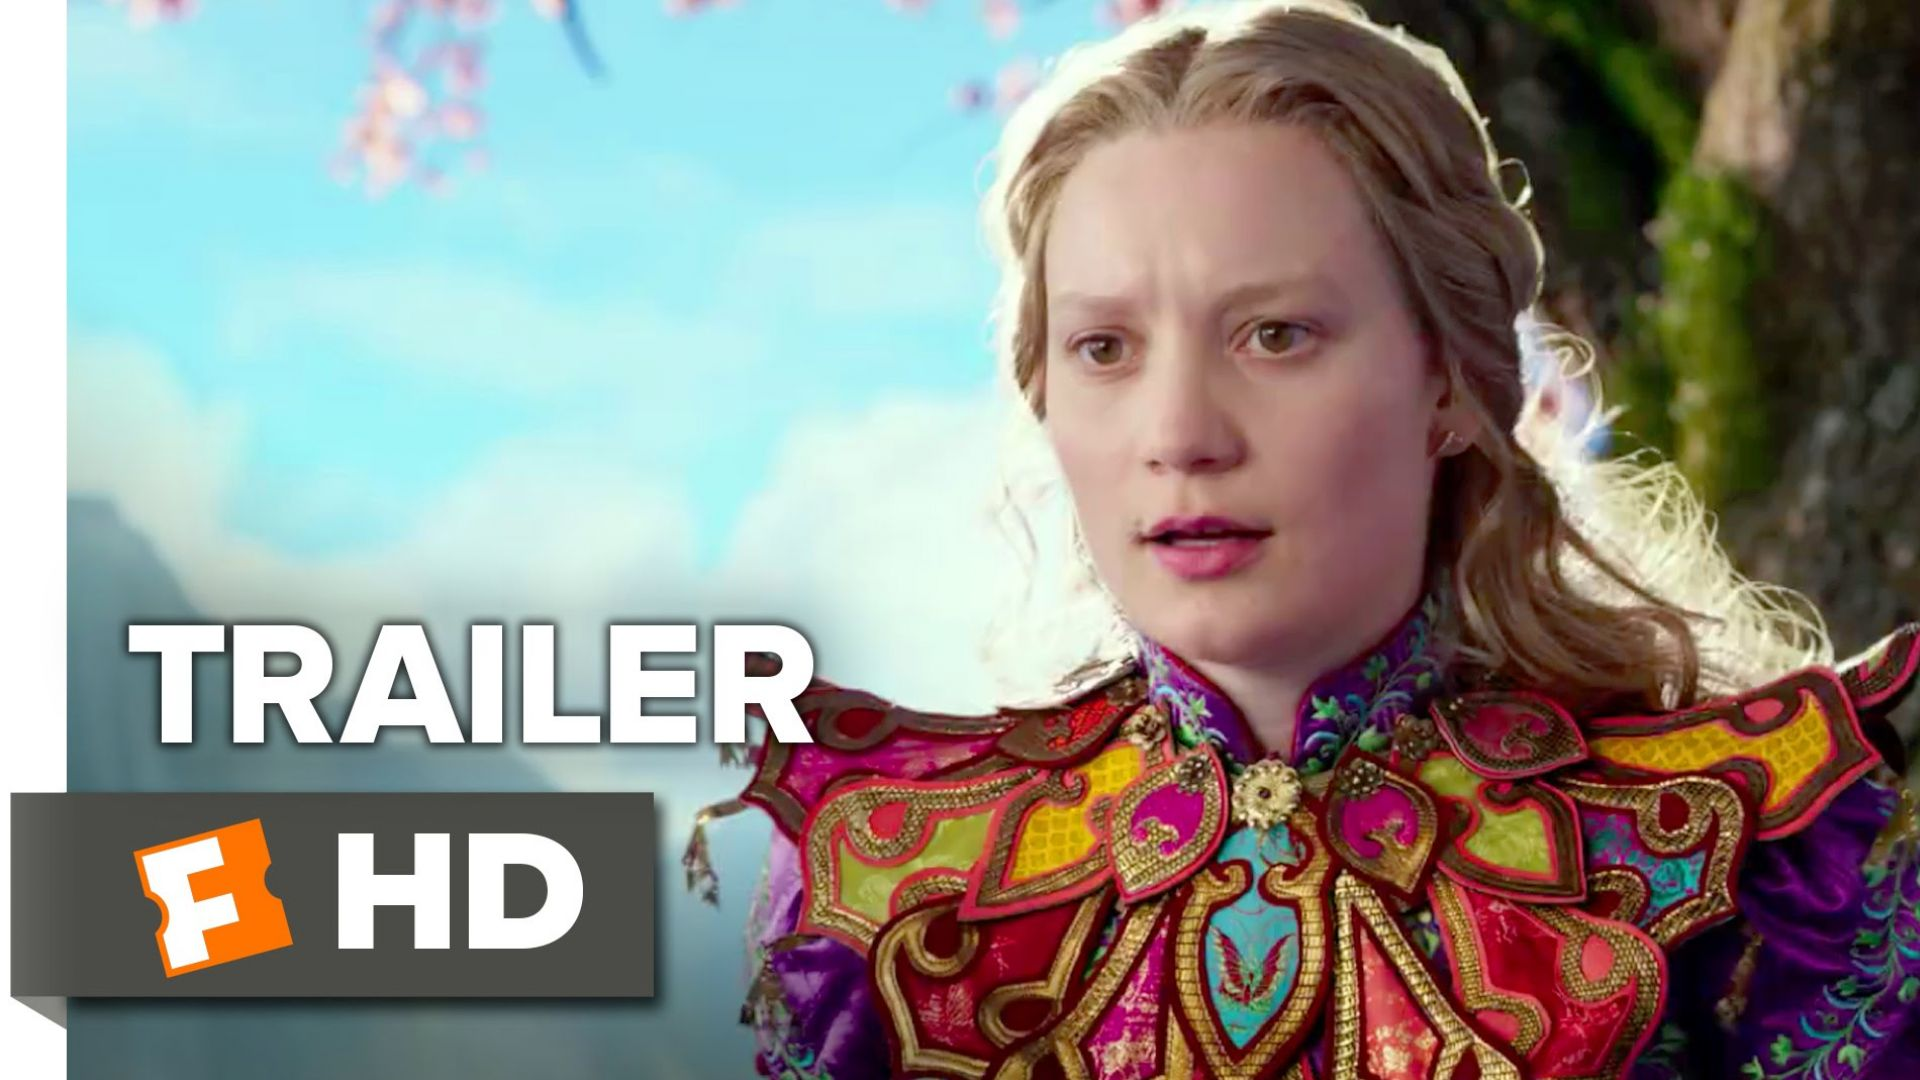 'Alice Through The Looking Glass' Trailer 2. Opens on May 27